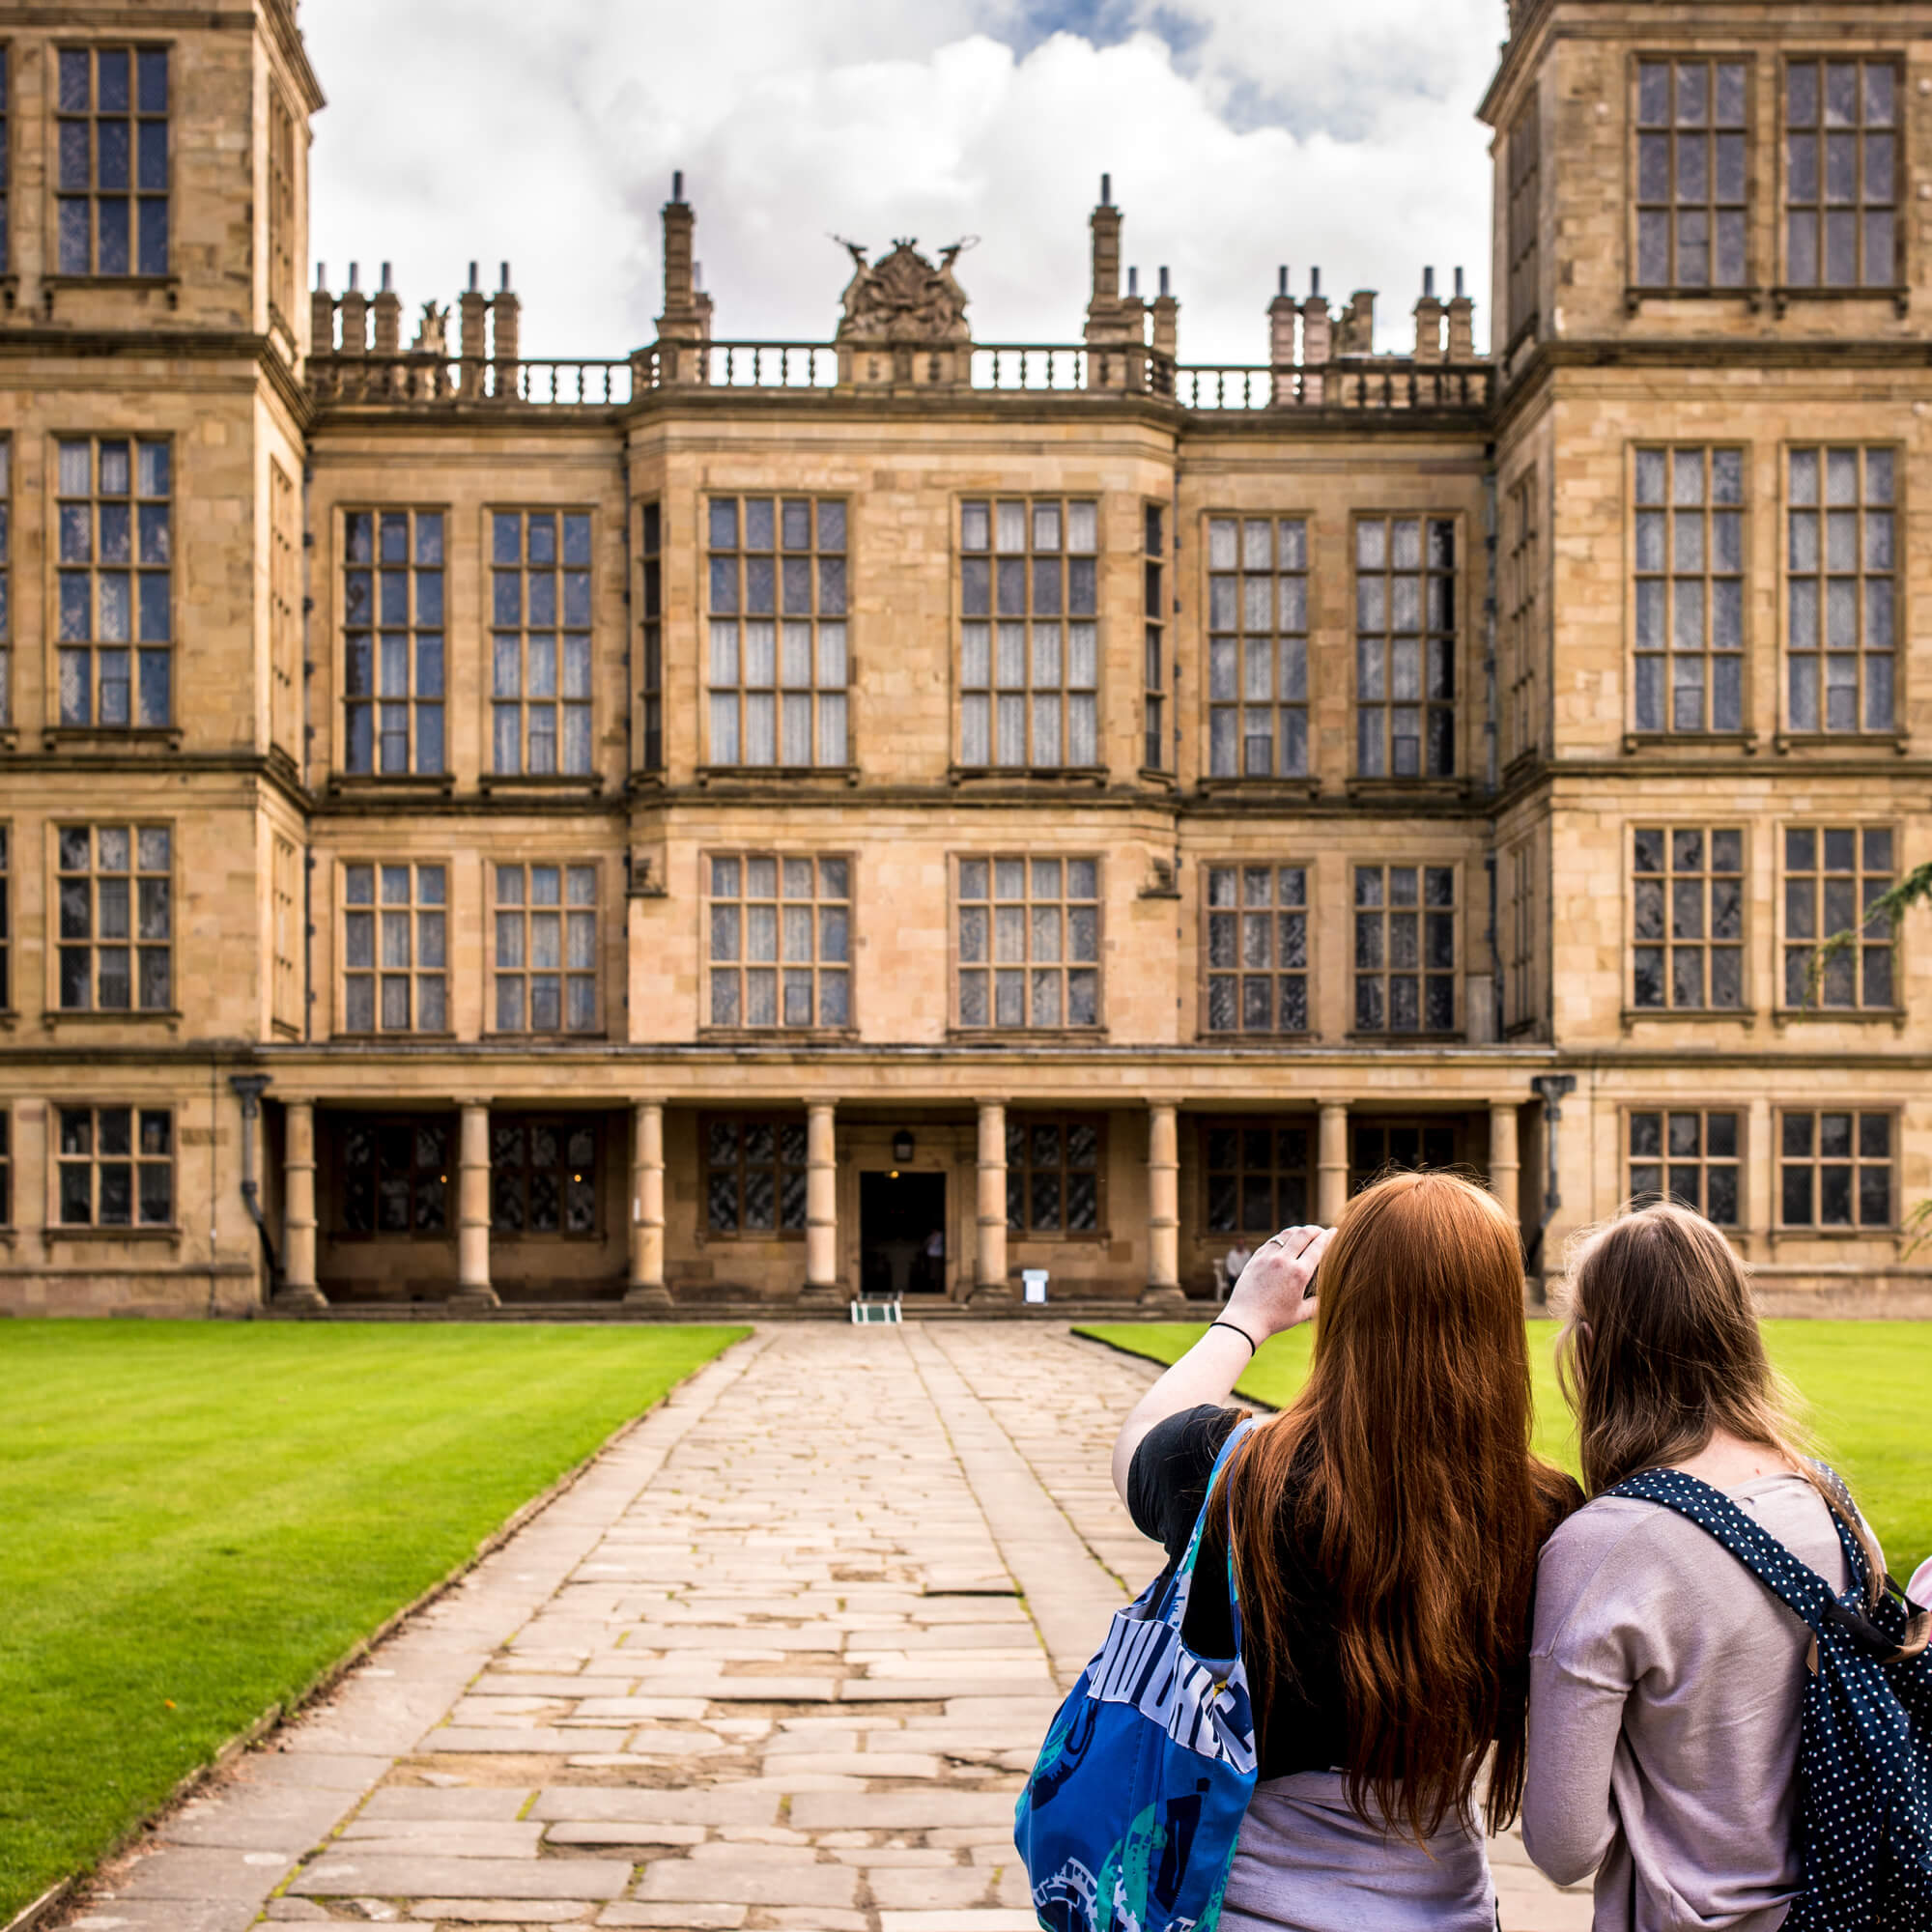 two students standing infront of a grand hall and taking pictures.